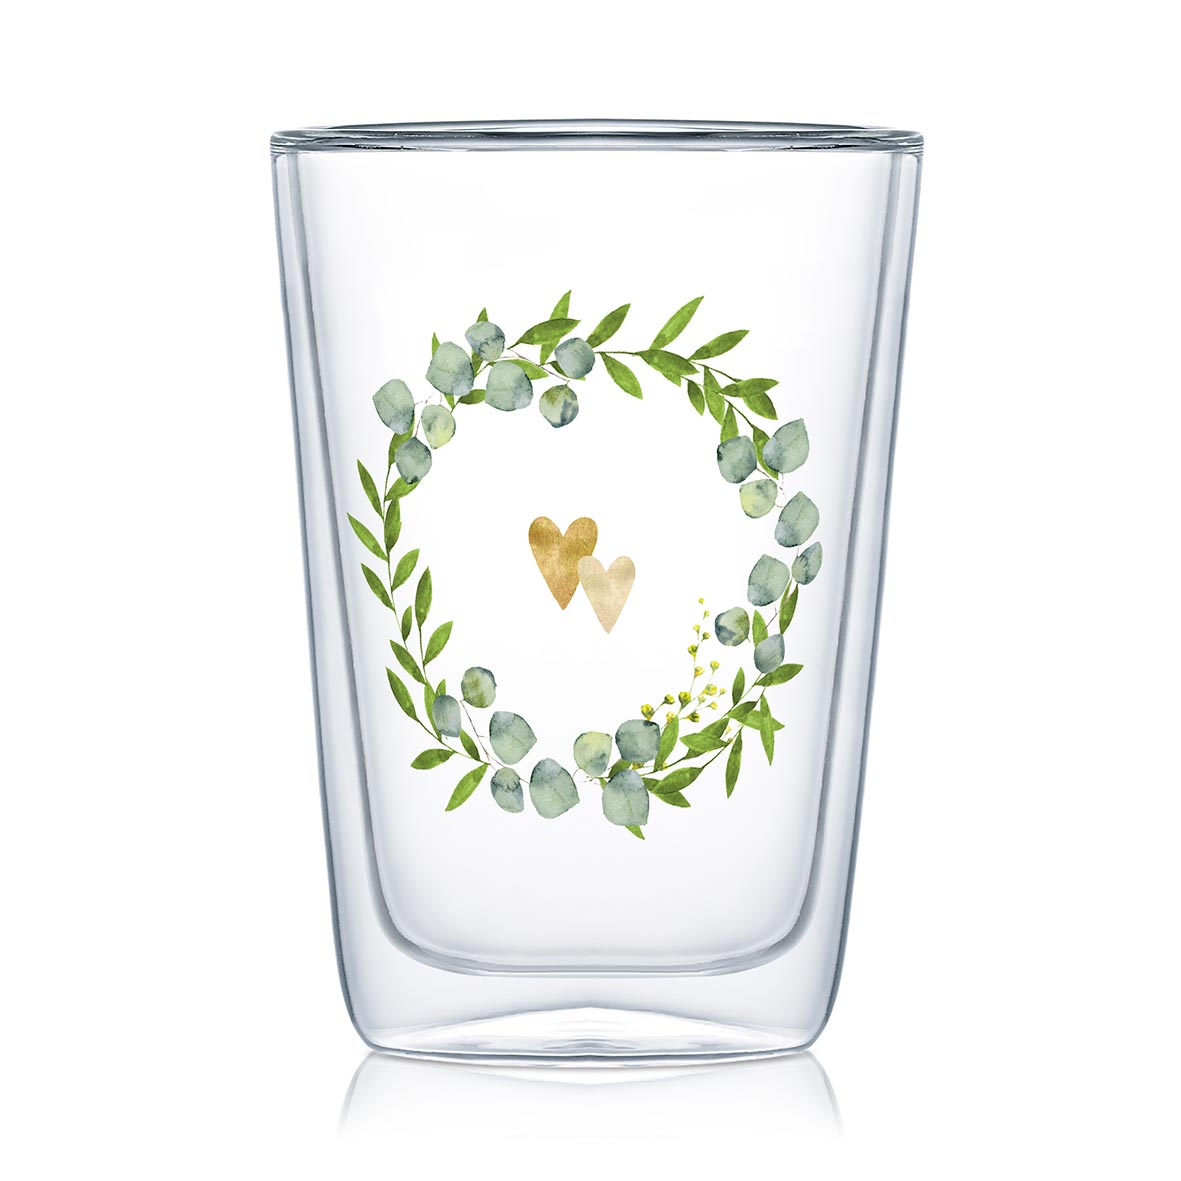 Two Hearts - Latte Macchiato Glas von PPD